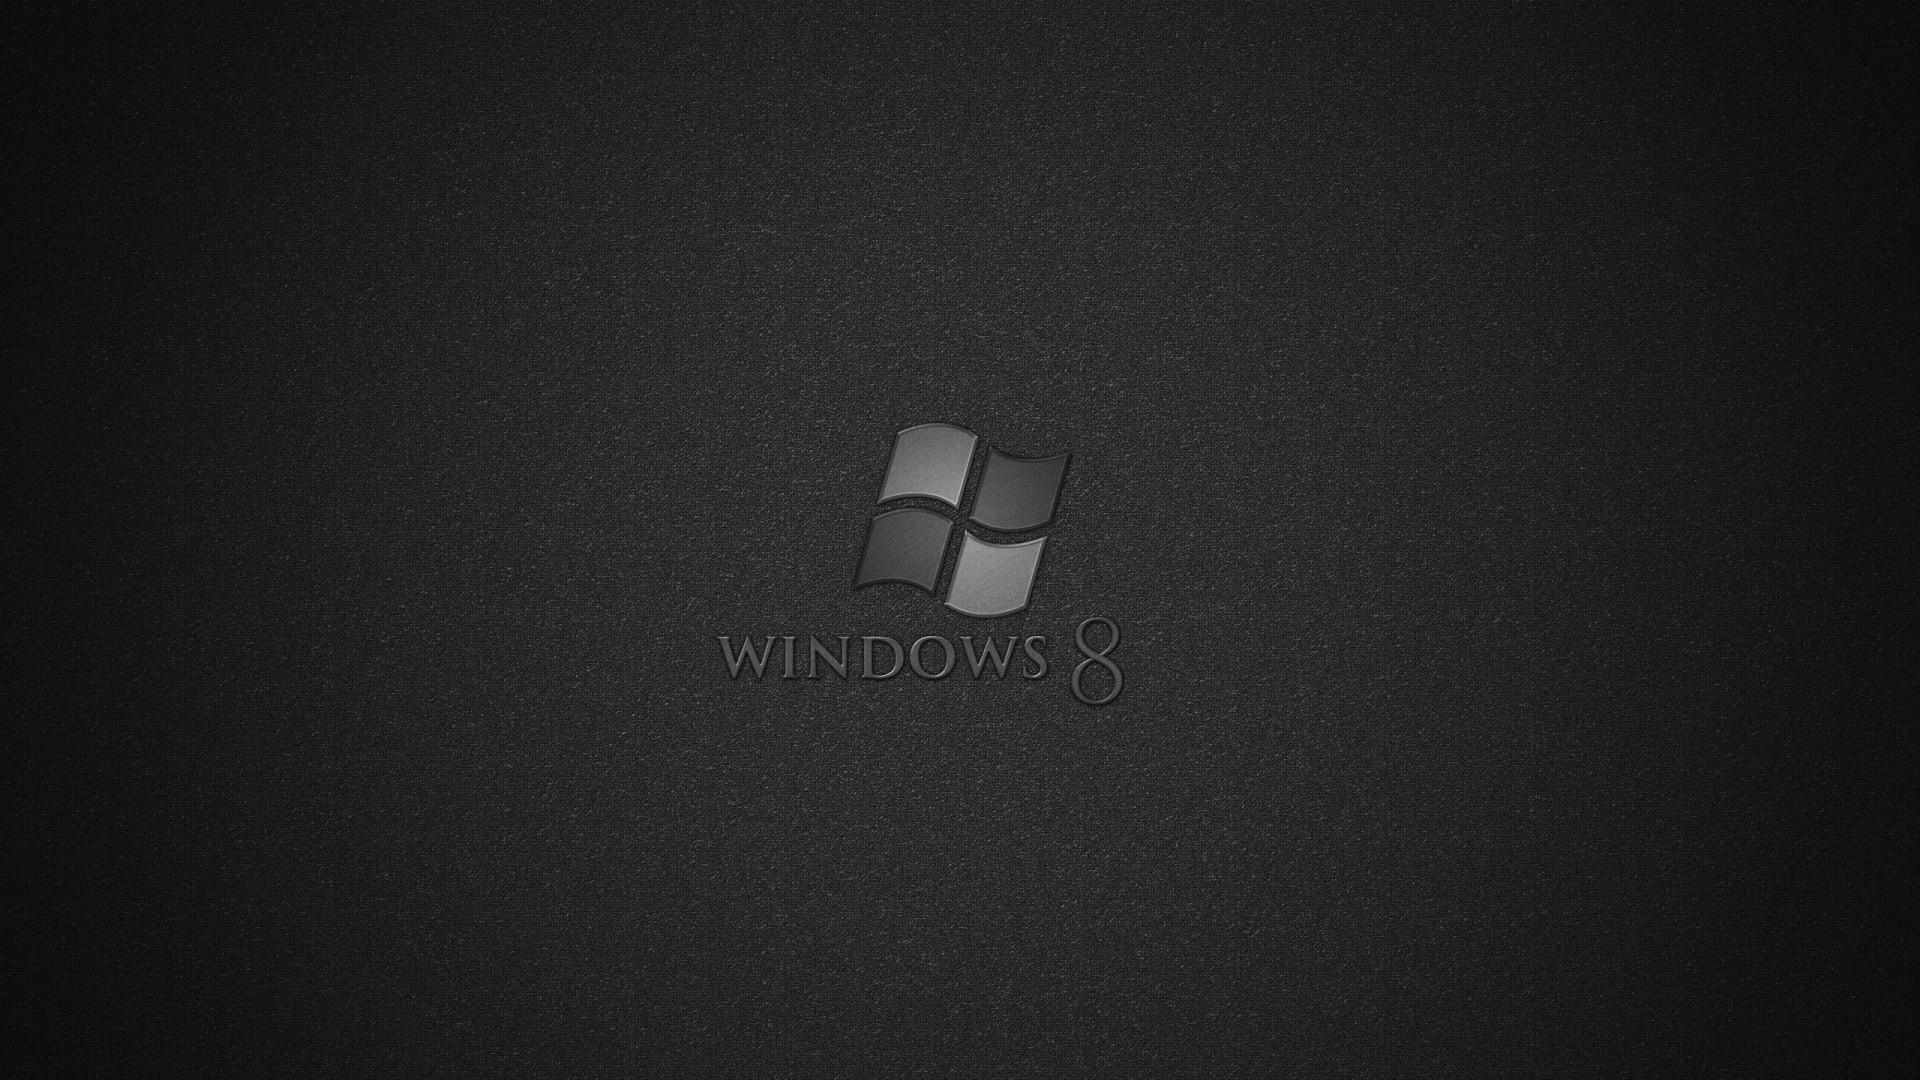 Black windows - Windows 8 Black Wallpaper Downloadwallpaperhd Com